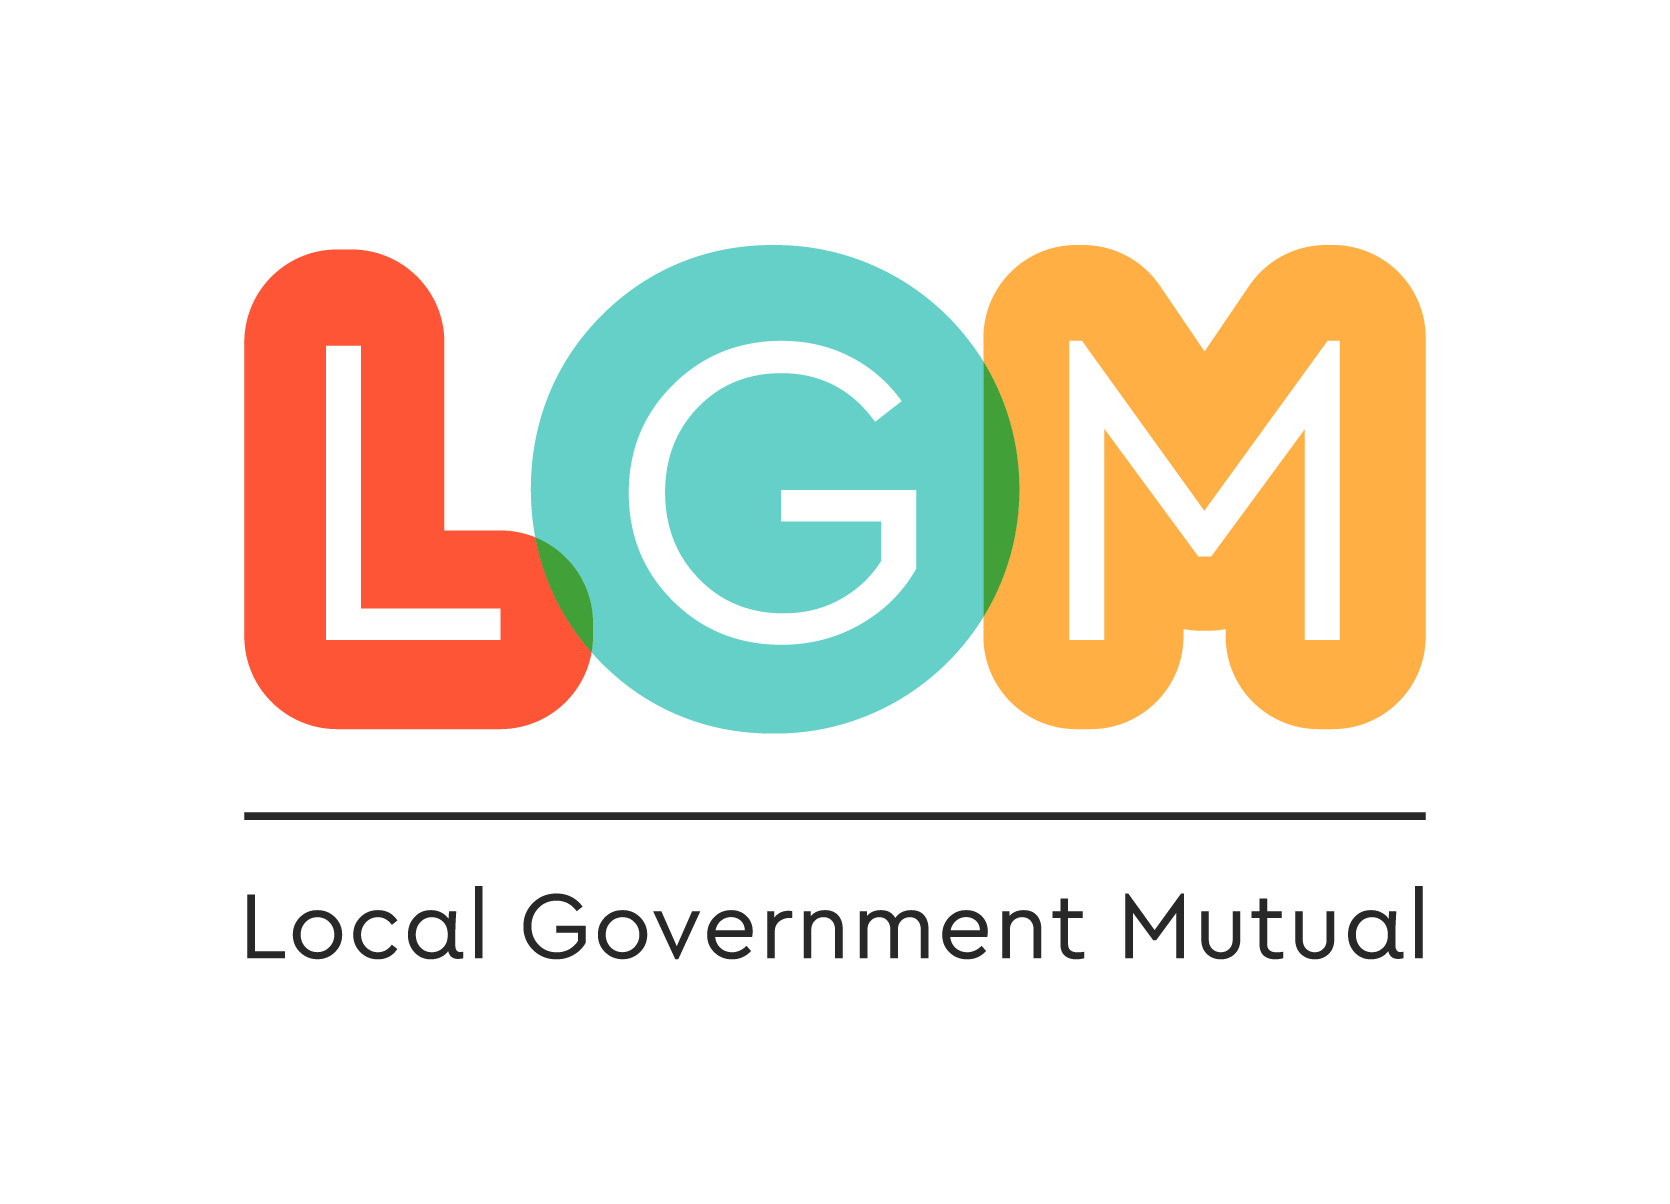 Local Government Mutual